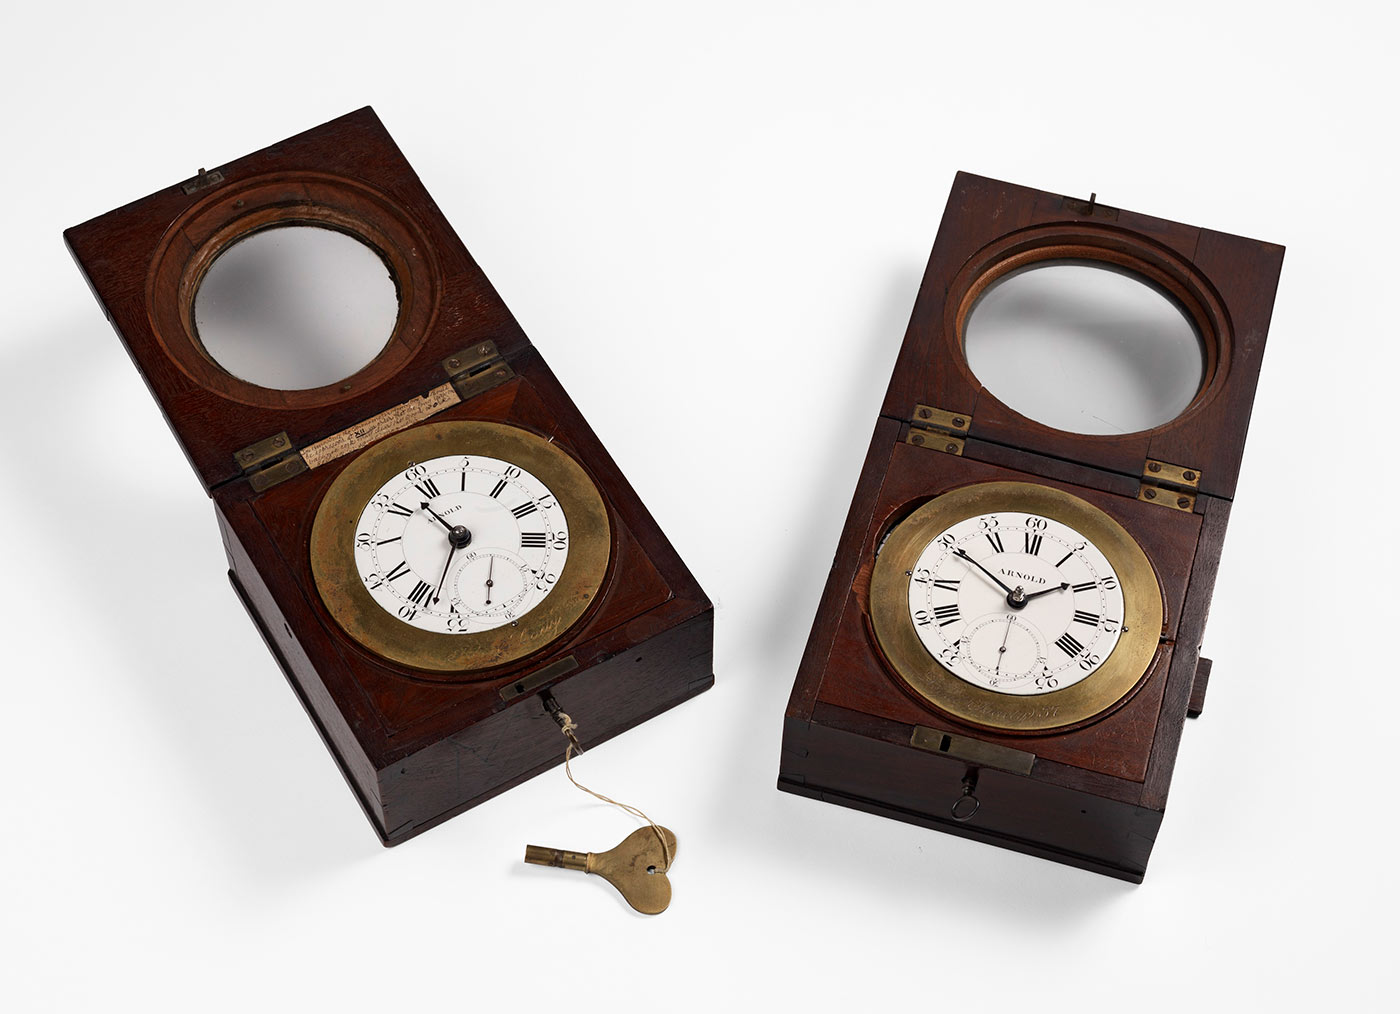 Chronometers used on Cook's second voyage to the Pacific made by John Arnold, London, 1771. The Royal Society. - click to view larger image